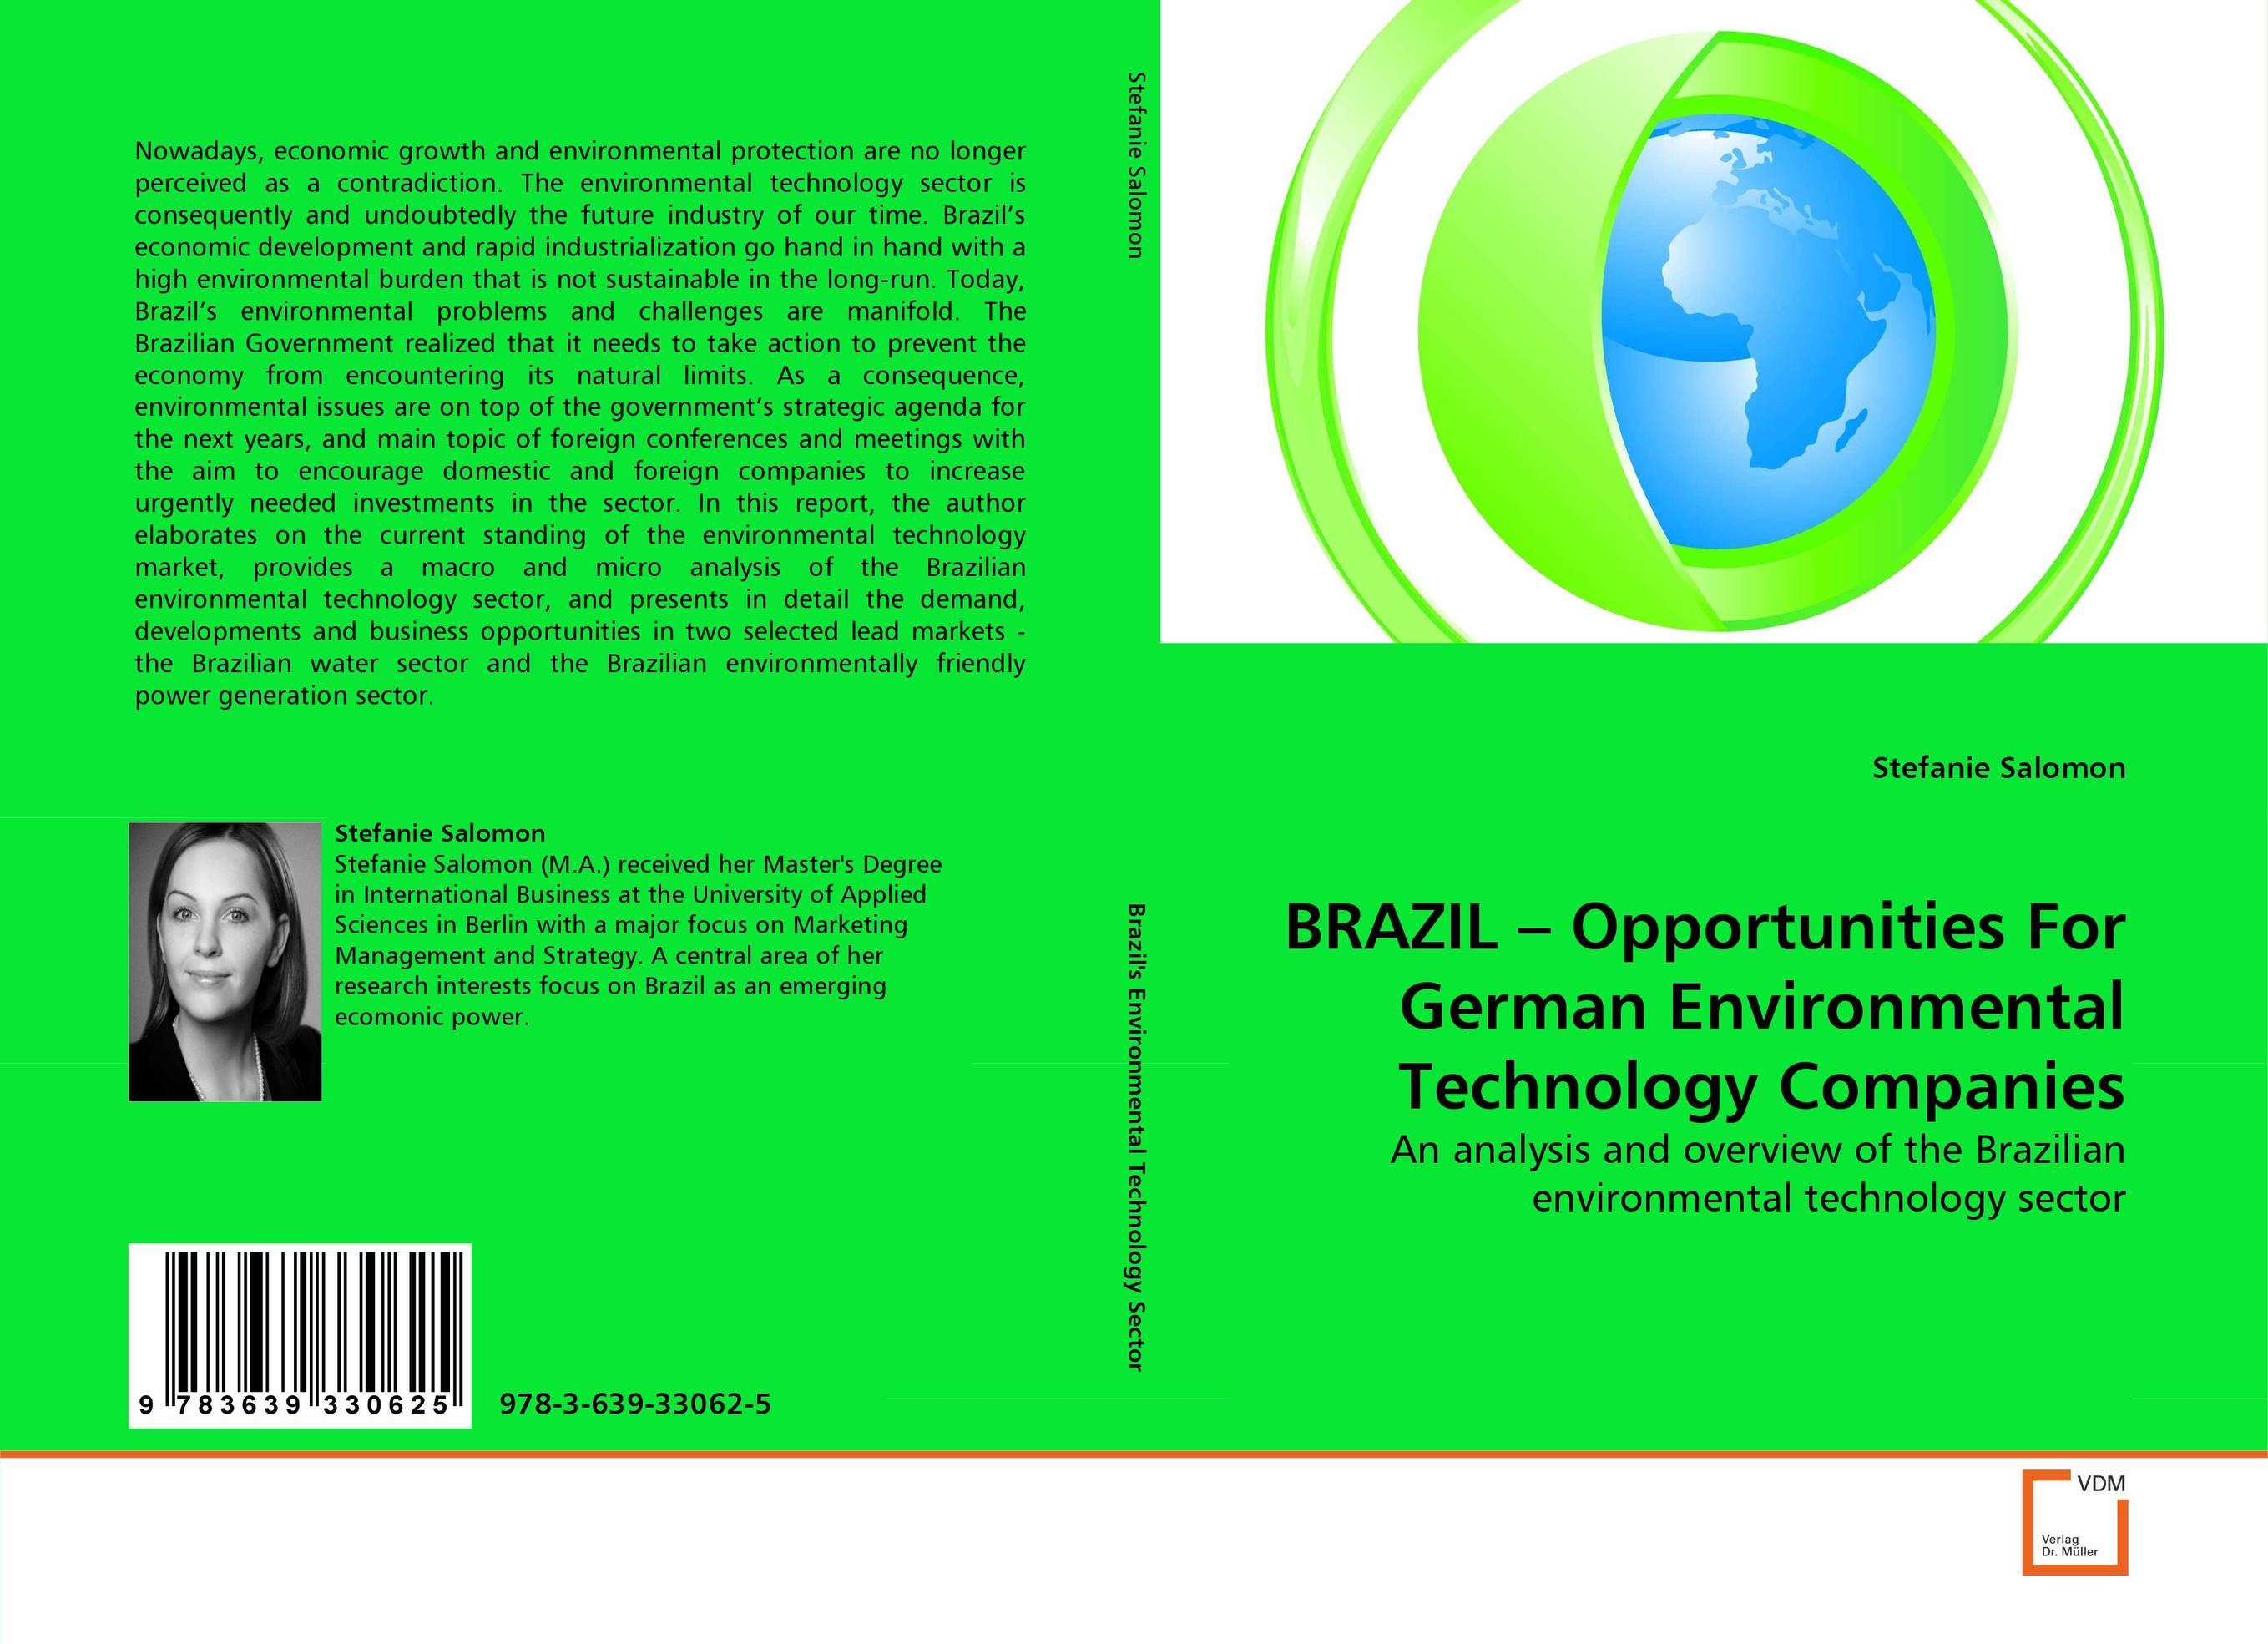 BRAZIL – Opportunities For German Environmental Technology Companies gary beach j the u s technology skills gap what every technology executive must know to save america s future